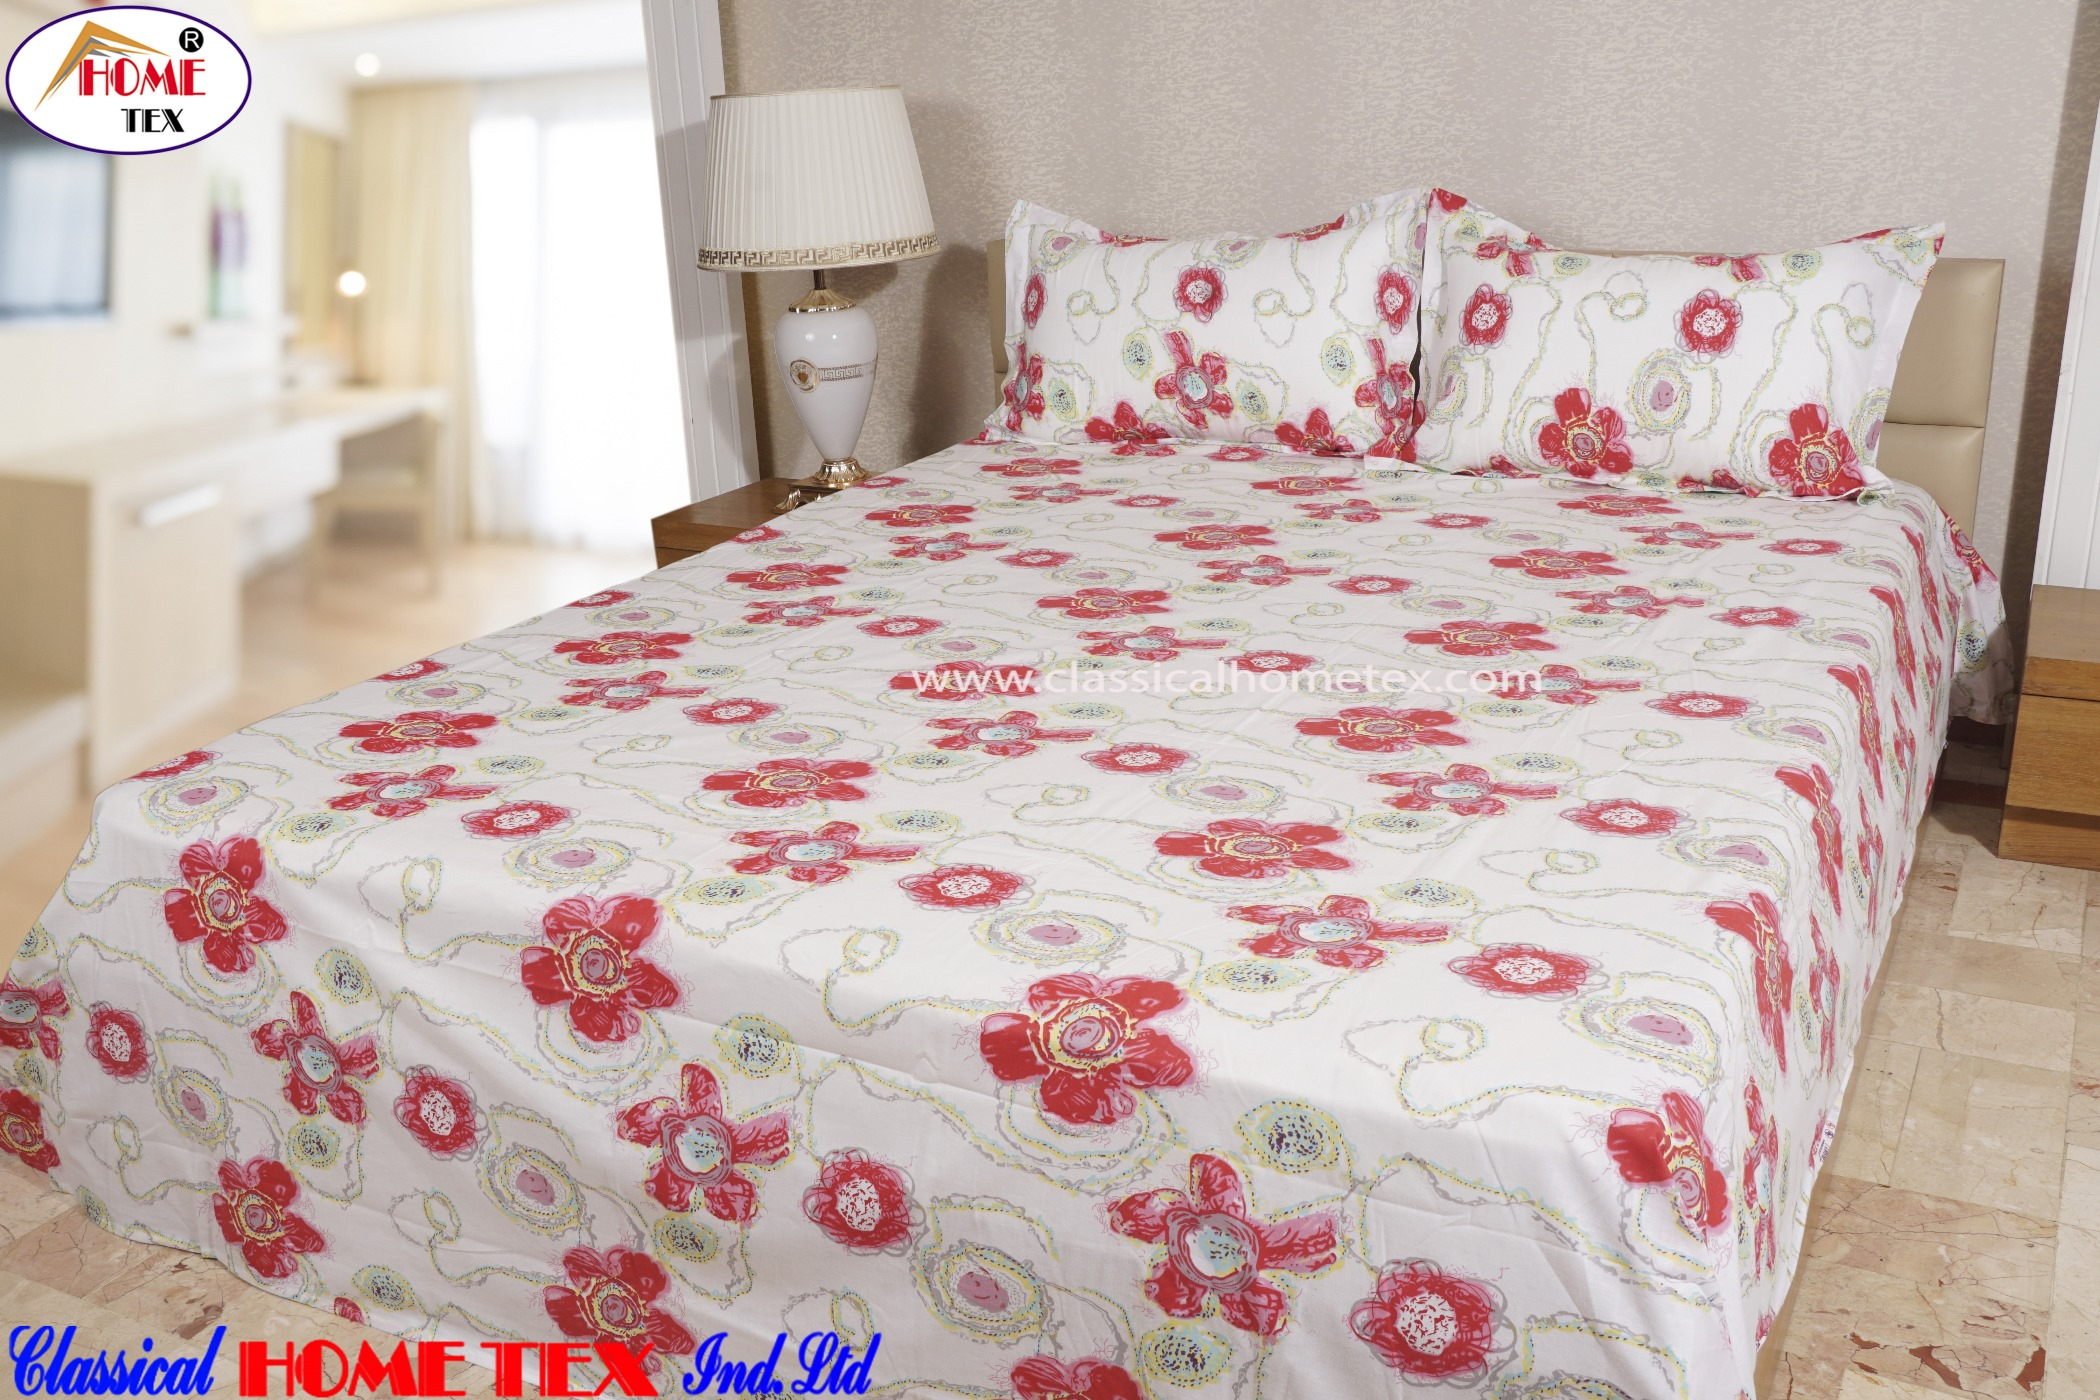 J1 Double Bed Sheet 1001   202